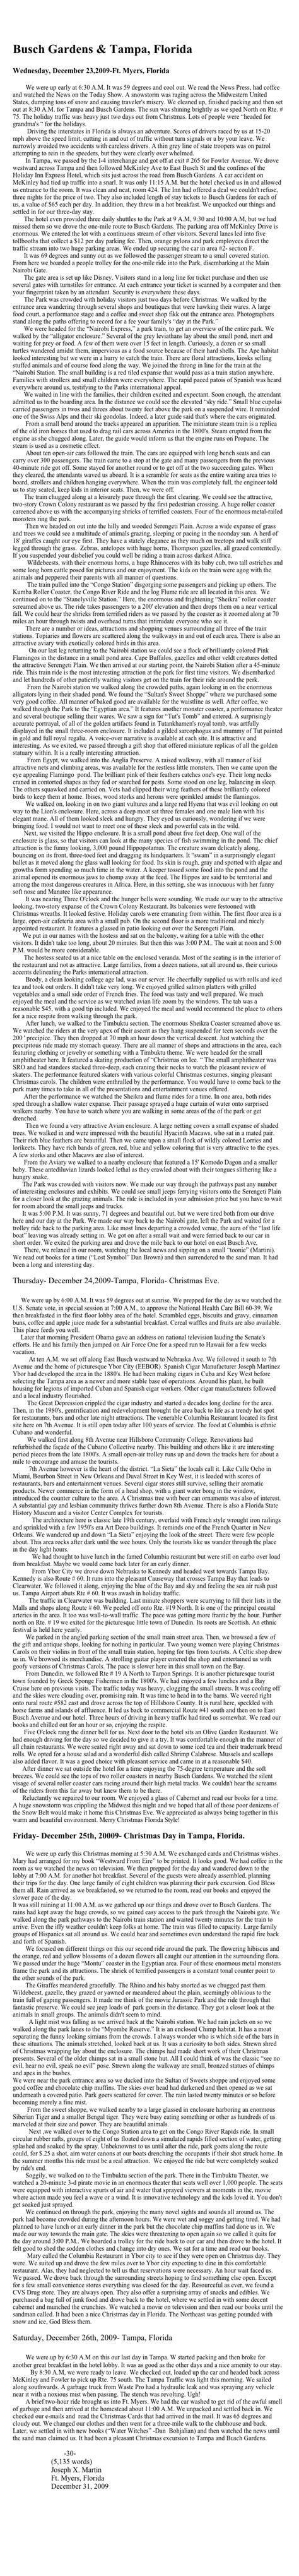 tree christmas much tampa performance parts truck were then leave sun heavy across florida without snow state ft united they